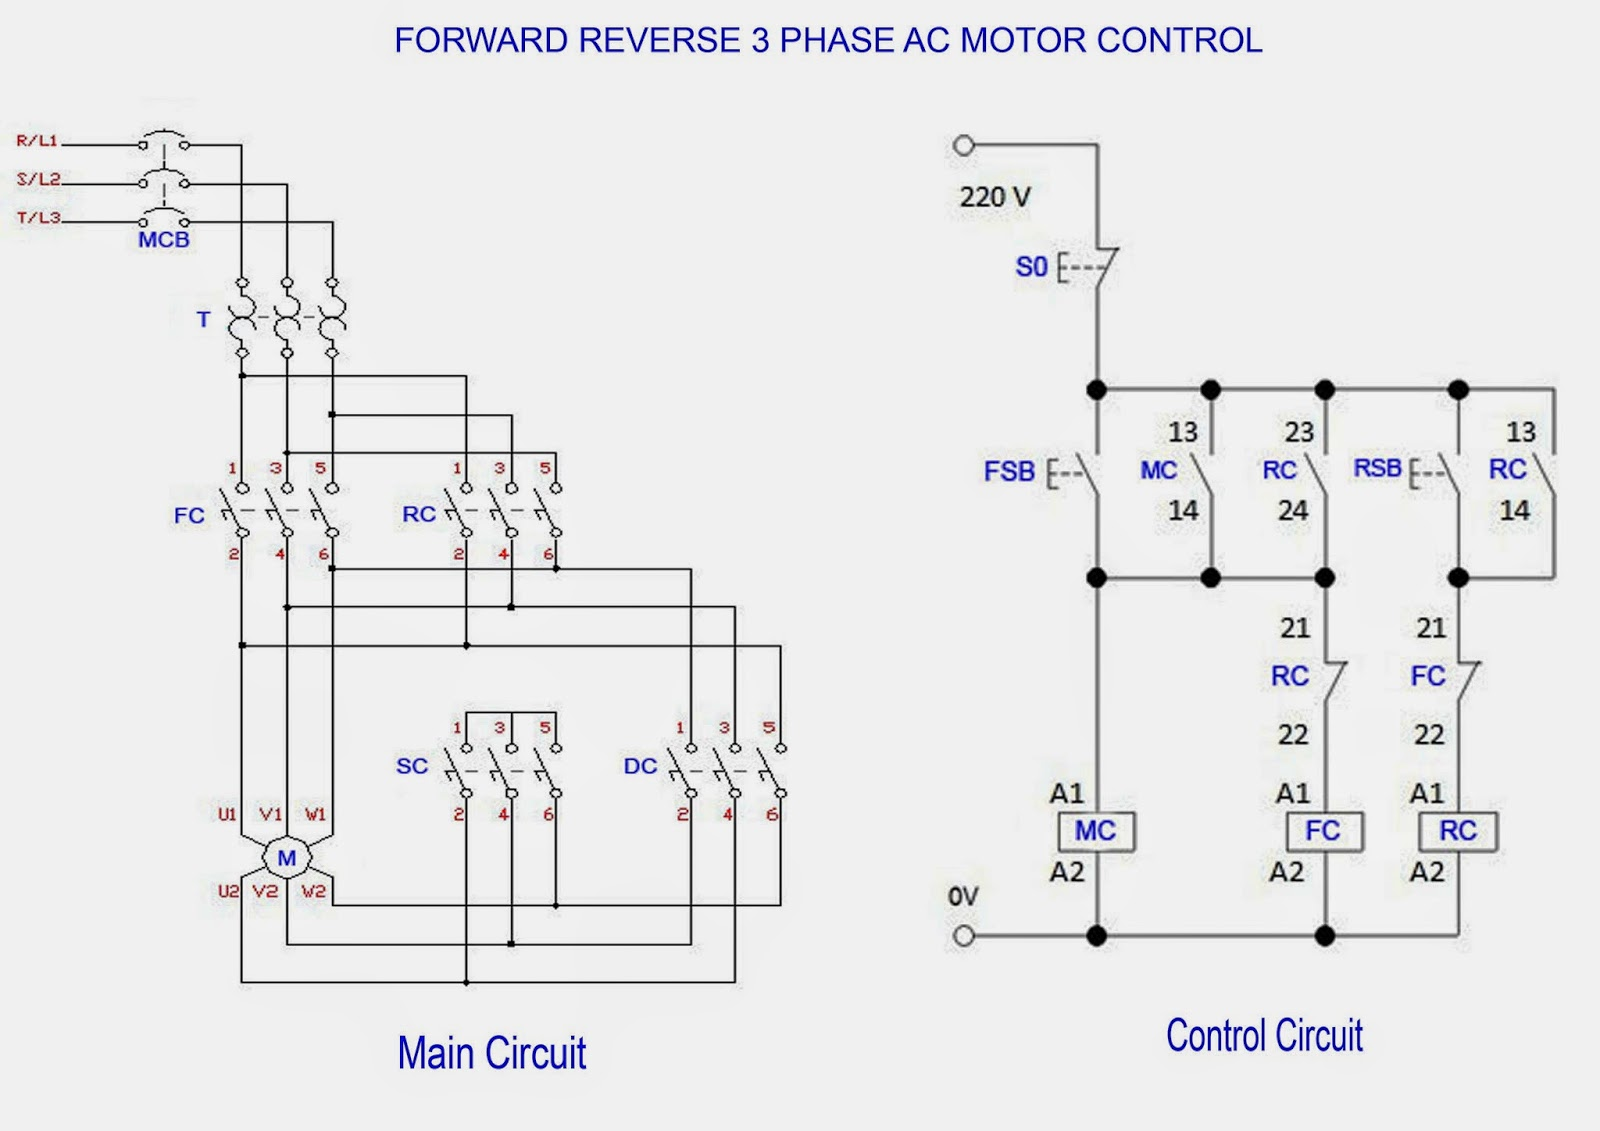 medium resolution of forward reverse 3 phase ac motor control star delta wiring forward reverse motor control circuit diagram pdf forward reverse motor control wiring